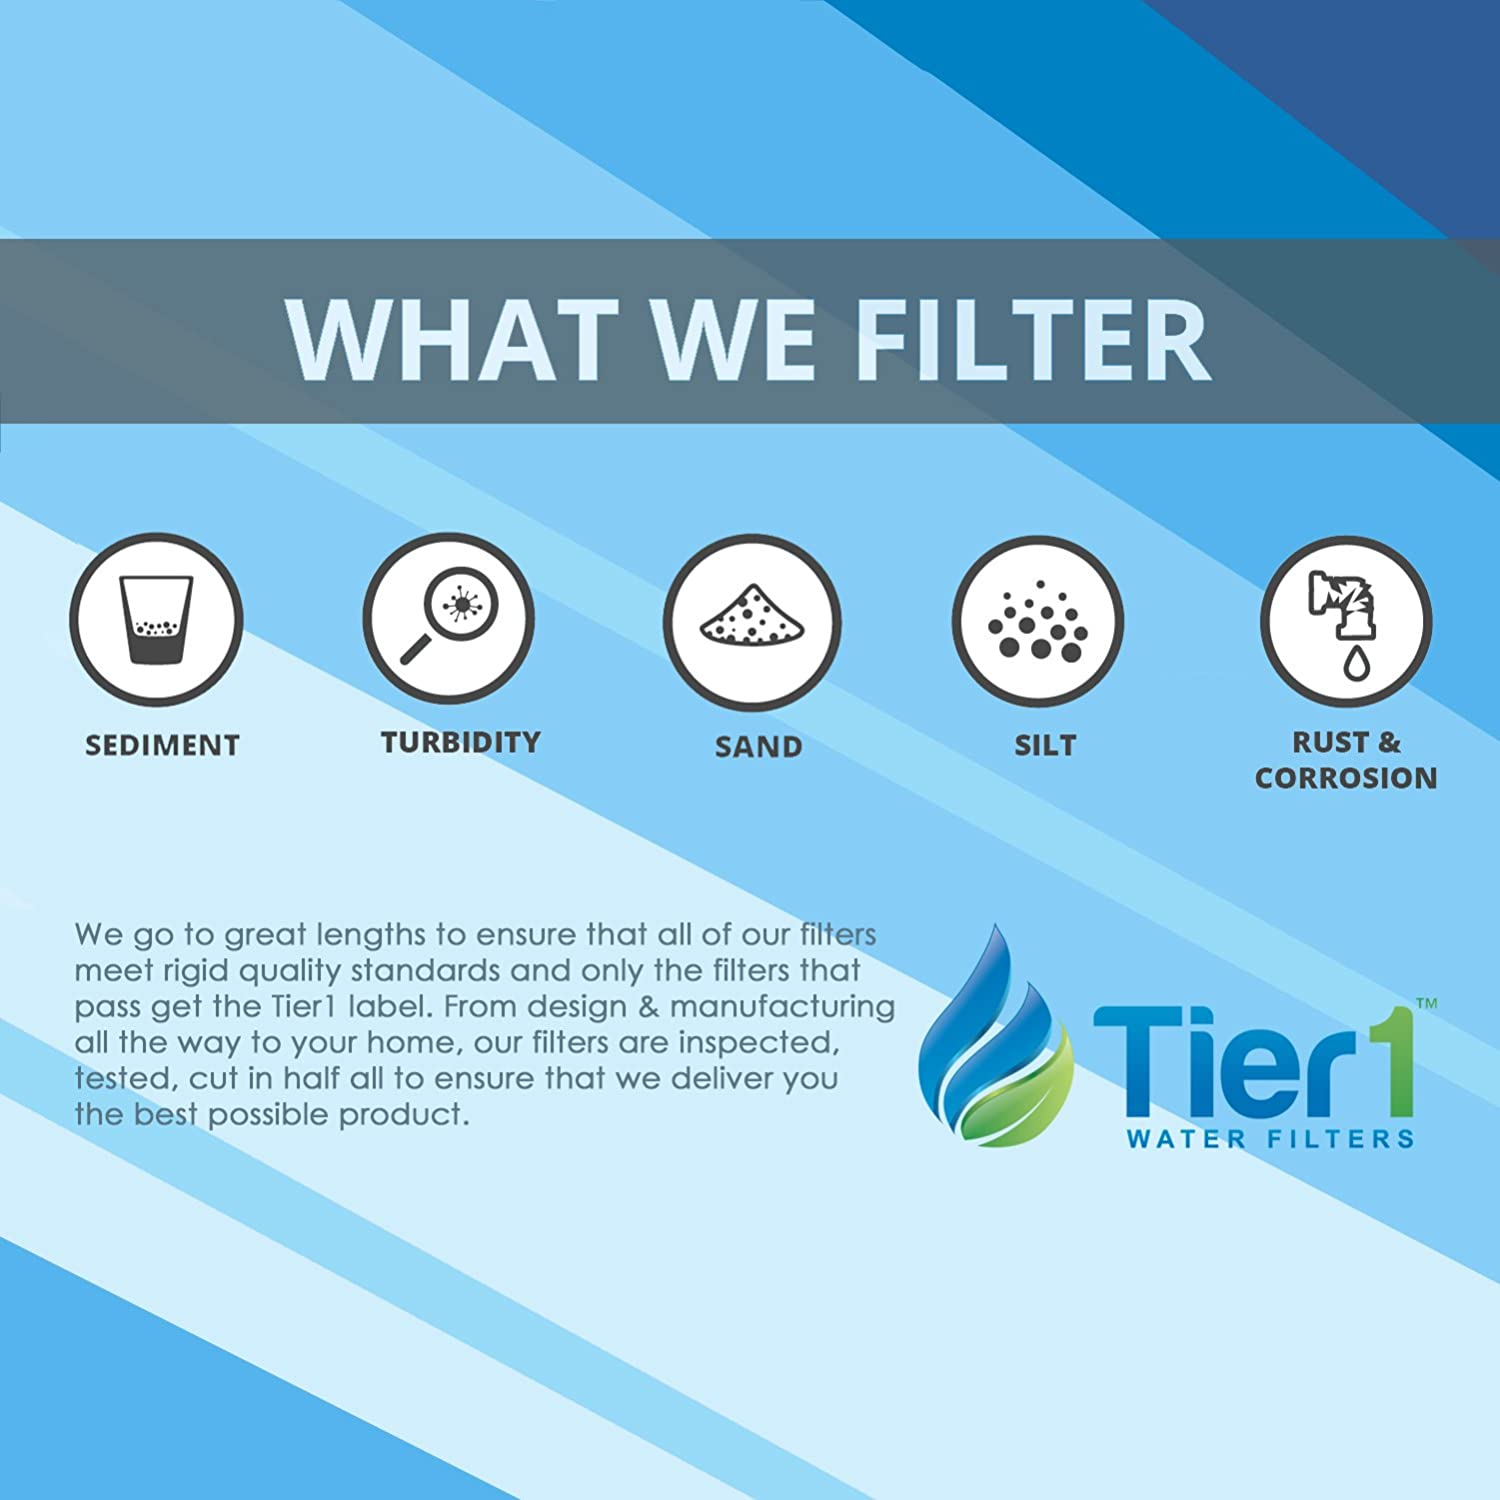 Tier1 Replacement for 10 inch x 4.5 inch 10 Micron Sediment Water Filter